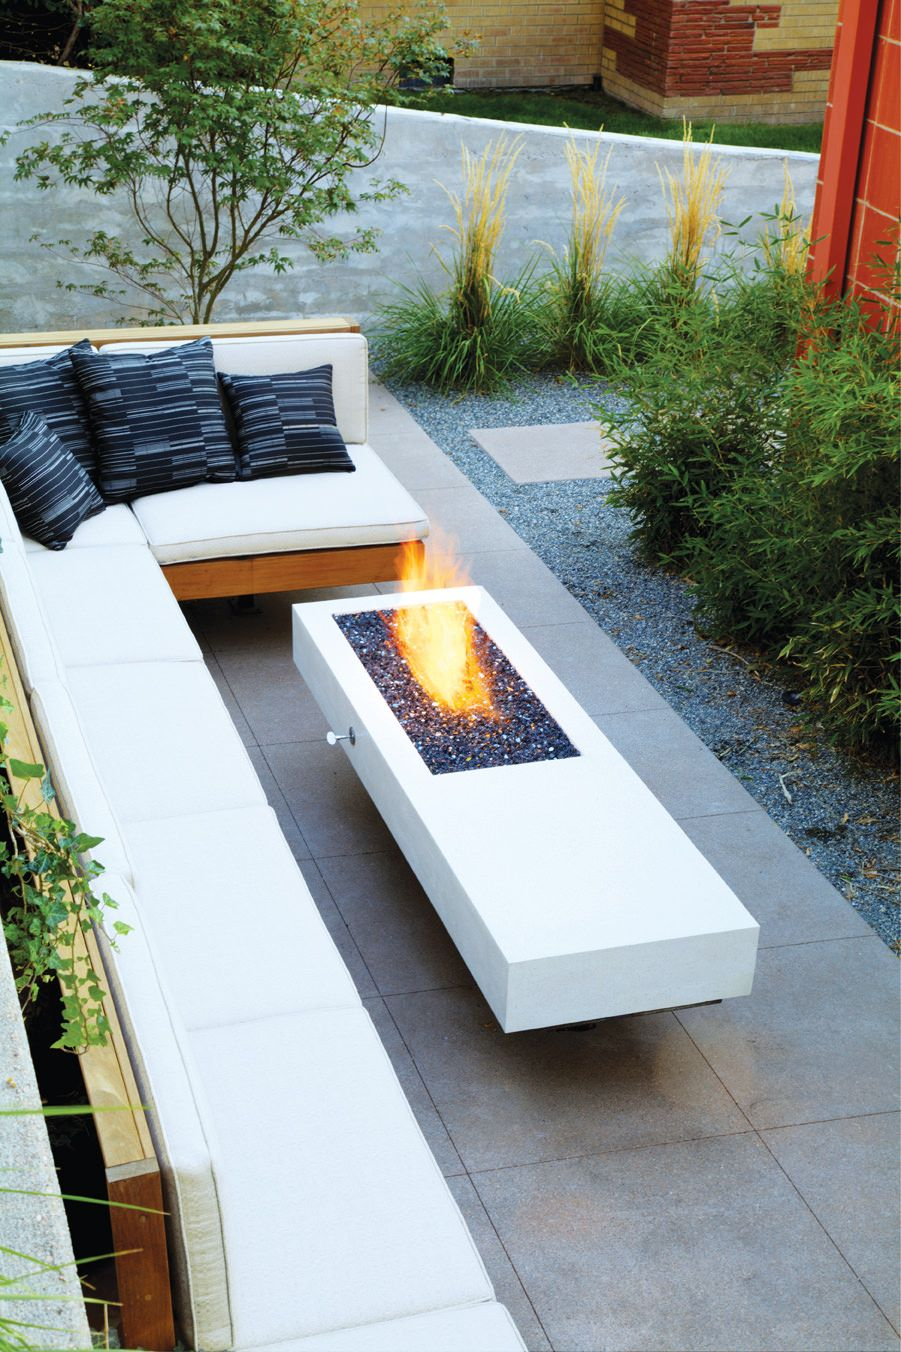 Furniture Gorgeous Sectional White Modern Outdoor Bench With Black Pillows Facing Fireplace Table Inspired For Good Patio